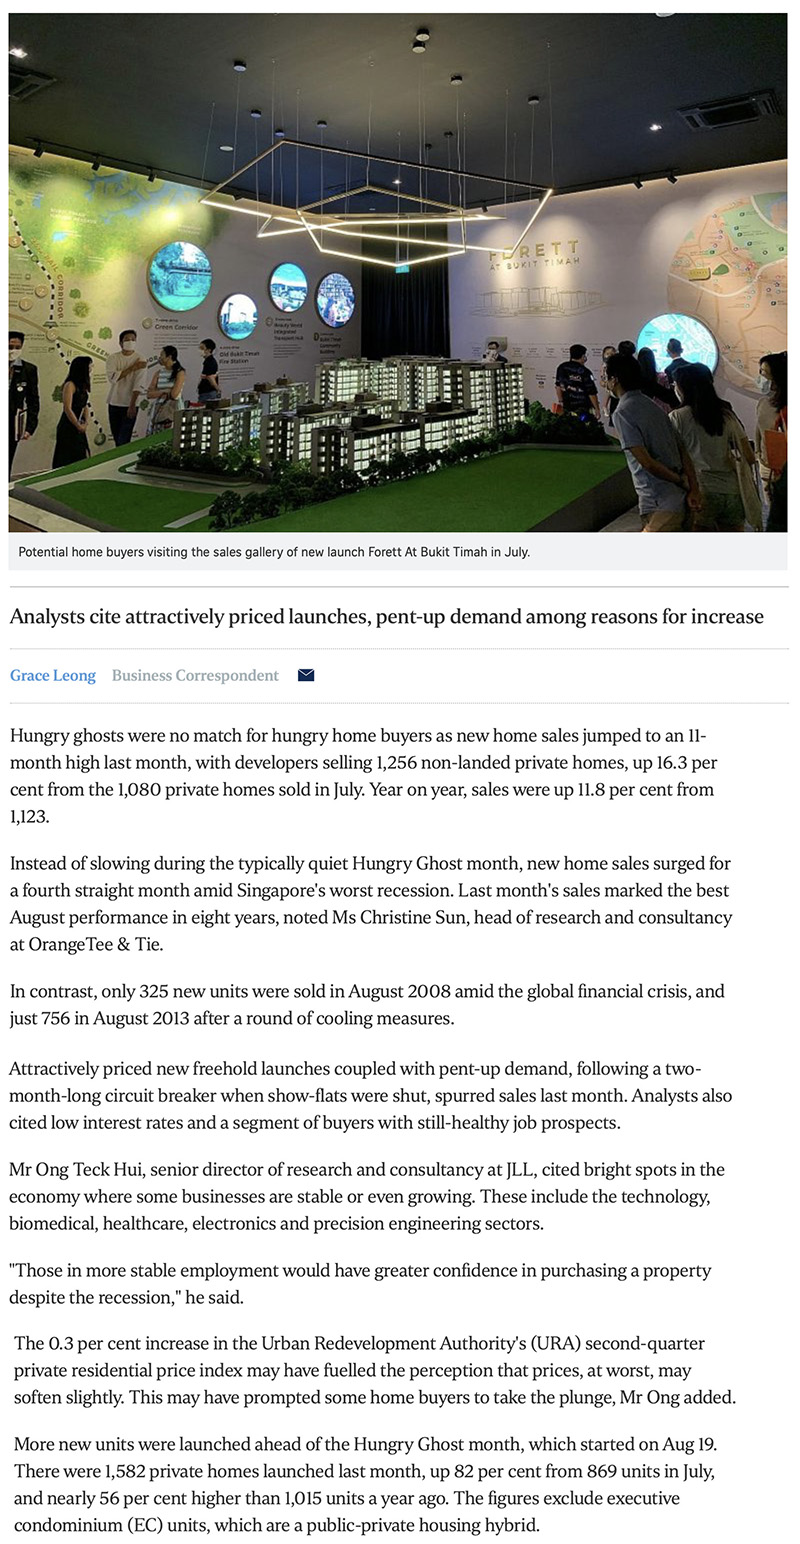 Hyll on Holland - New home sales surge to 11-month high in August 1